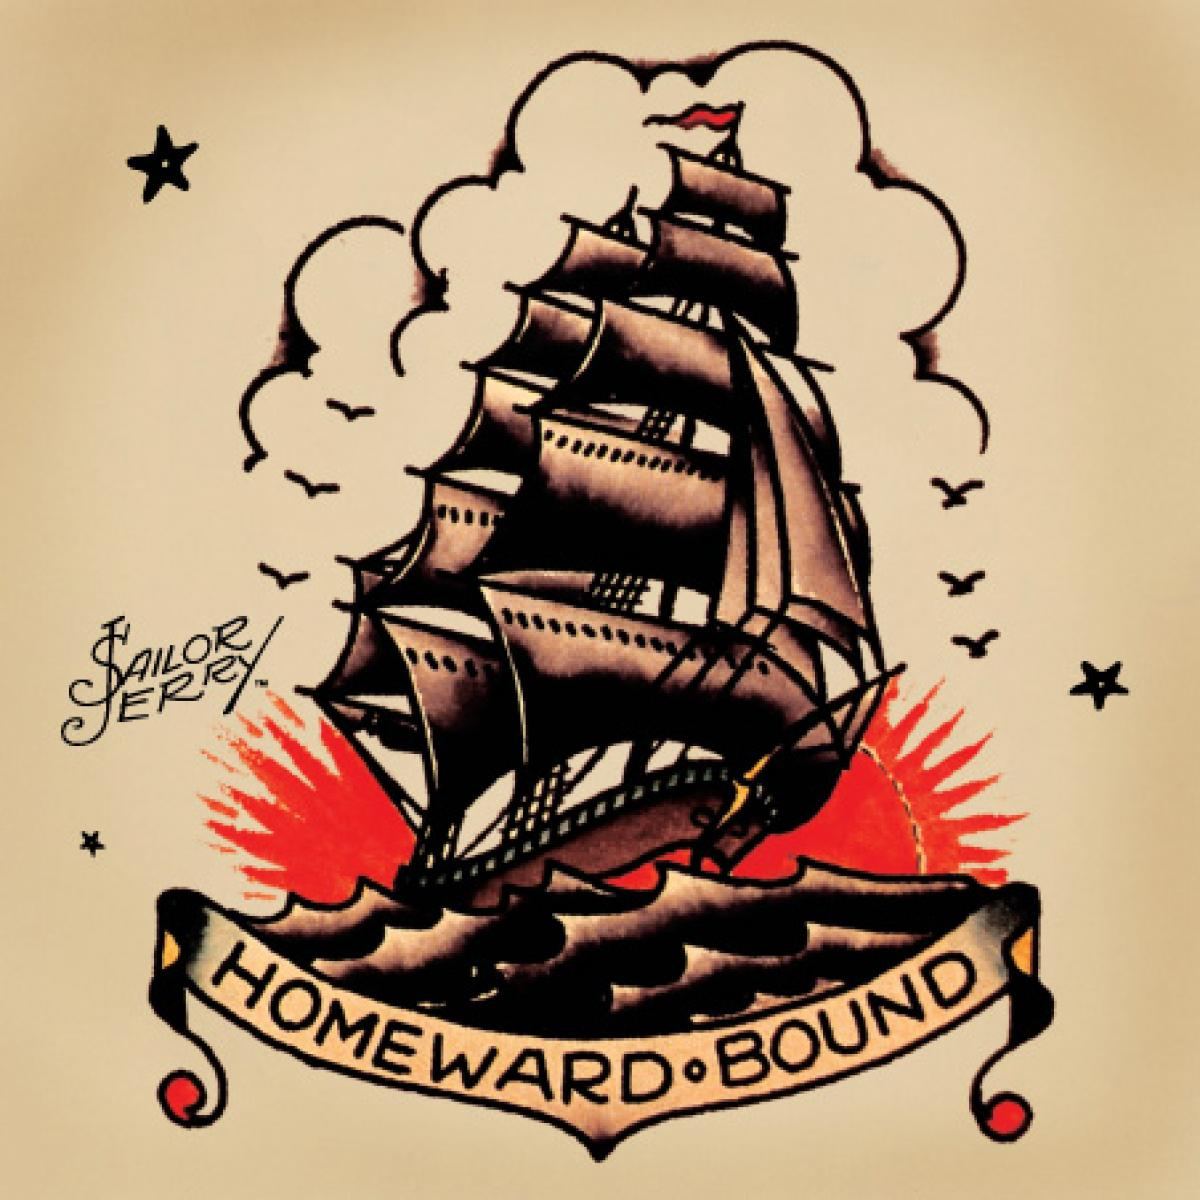 Homeward Bound BAnner Navy Old School Ship Tattoo